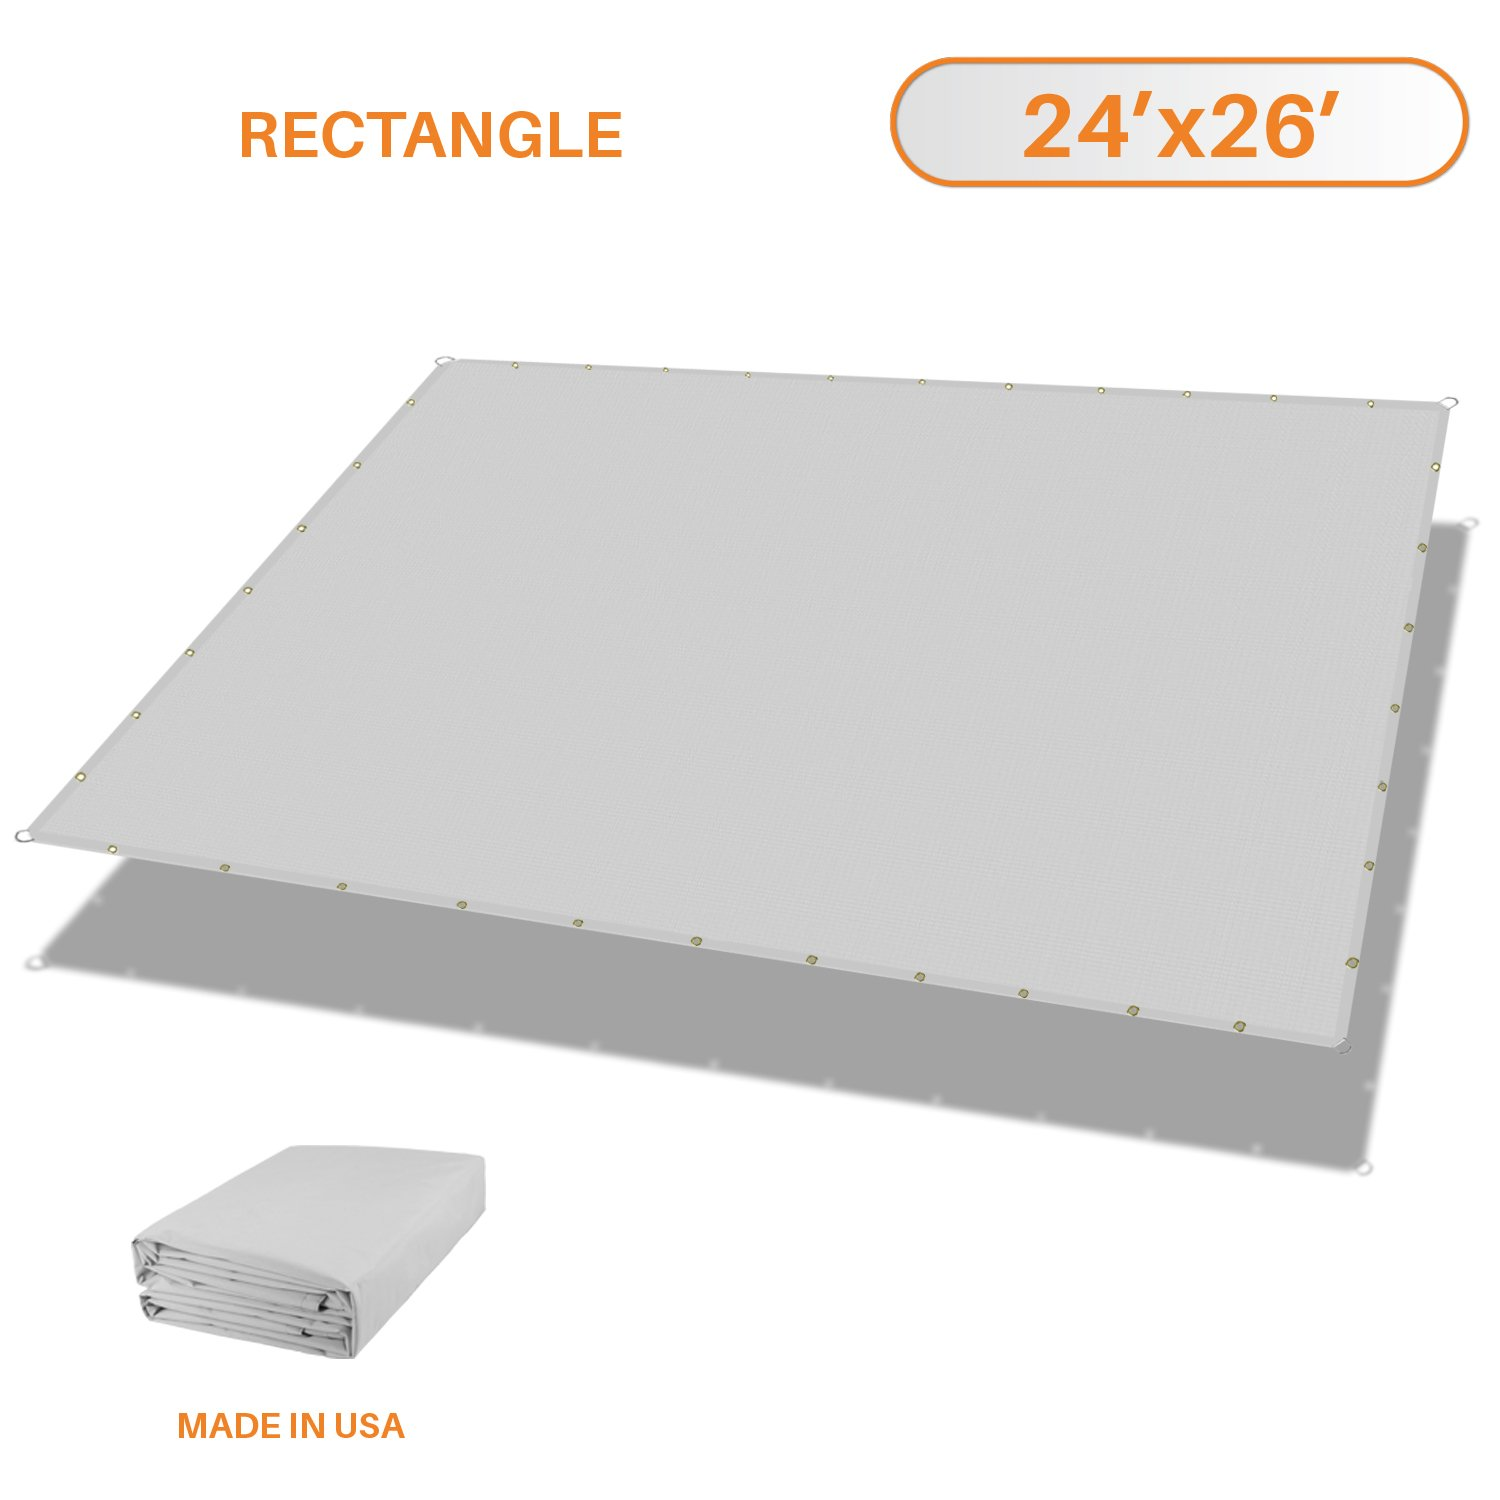 Sunshades Depot Tang 24' x 26' FT Waterproof Rectangle Sun Shade Sail 220 GSM Light Gray Straight Edge Canopy with Grommet UV Block Shade Fabric Pergola Cover Awning Customize Available